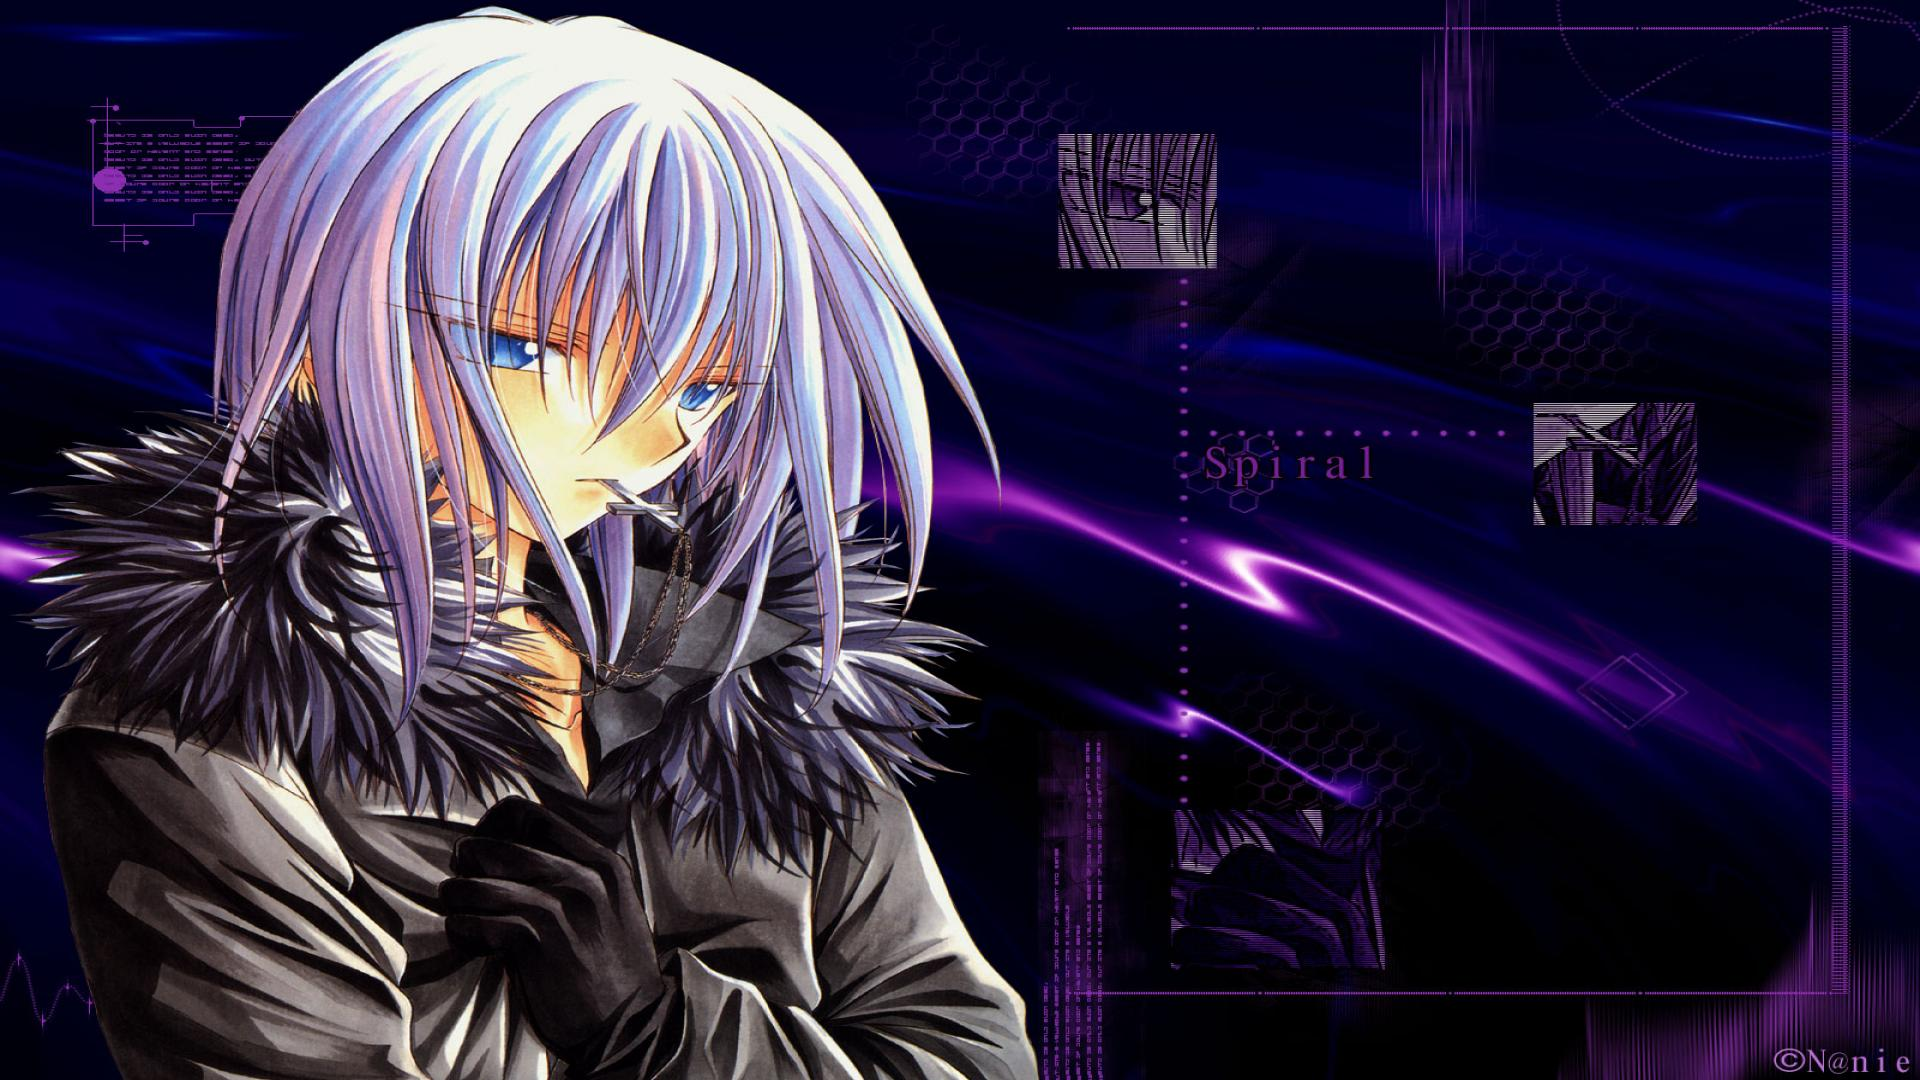 Tech Anime HD Wallpapers 1920x1080 Anime Wallpapers 1920x1080 Download 1920x1080